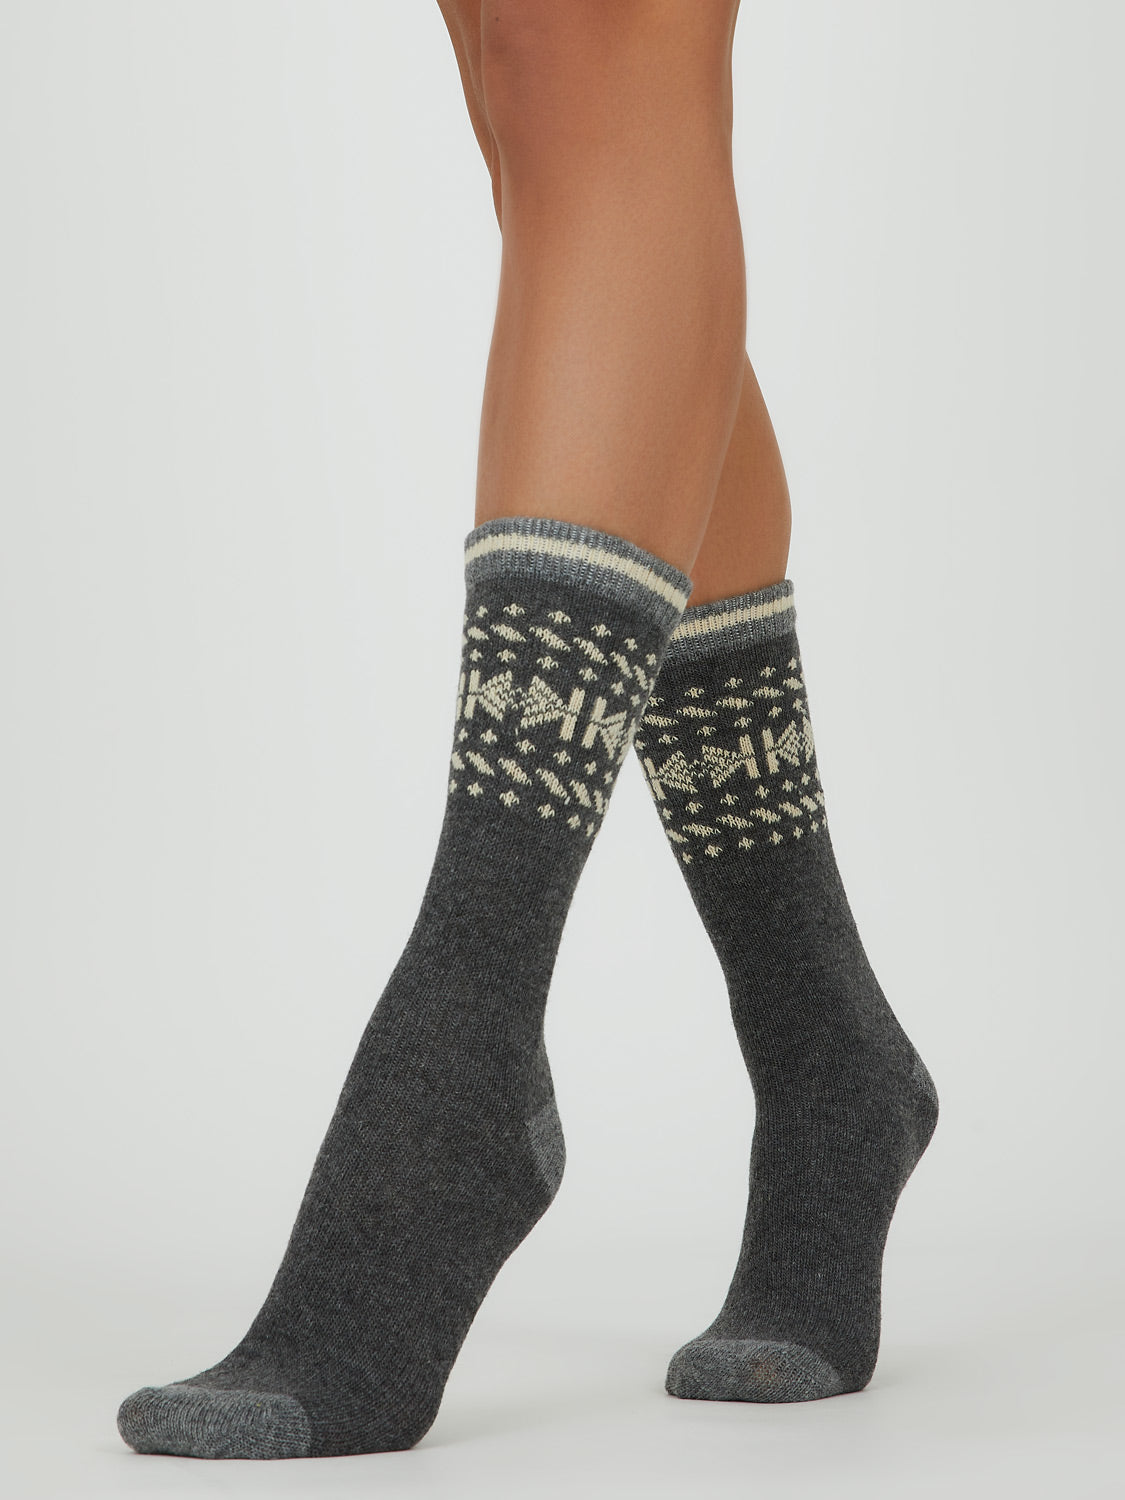 Pack of 2 Fairisle & Solid Crew Socks